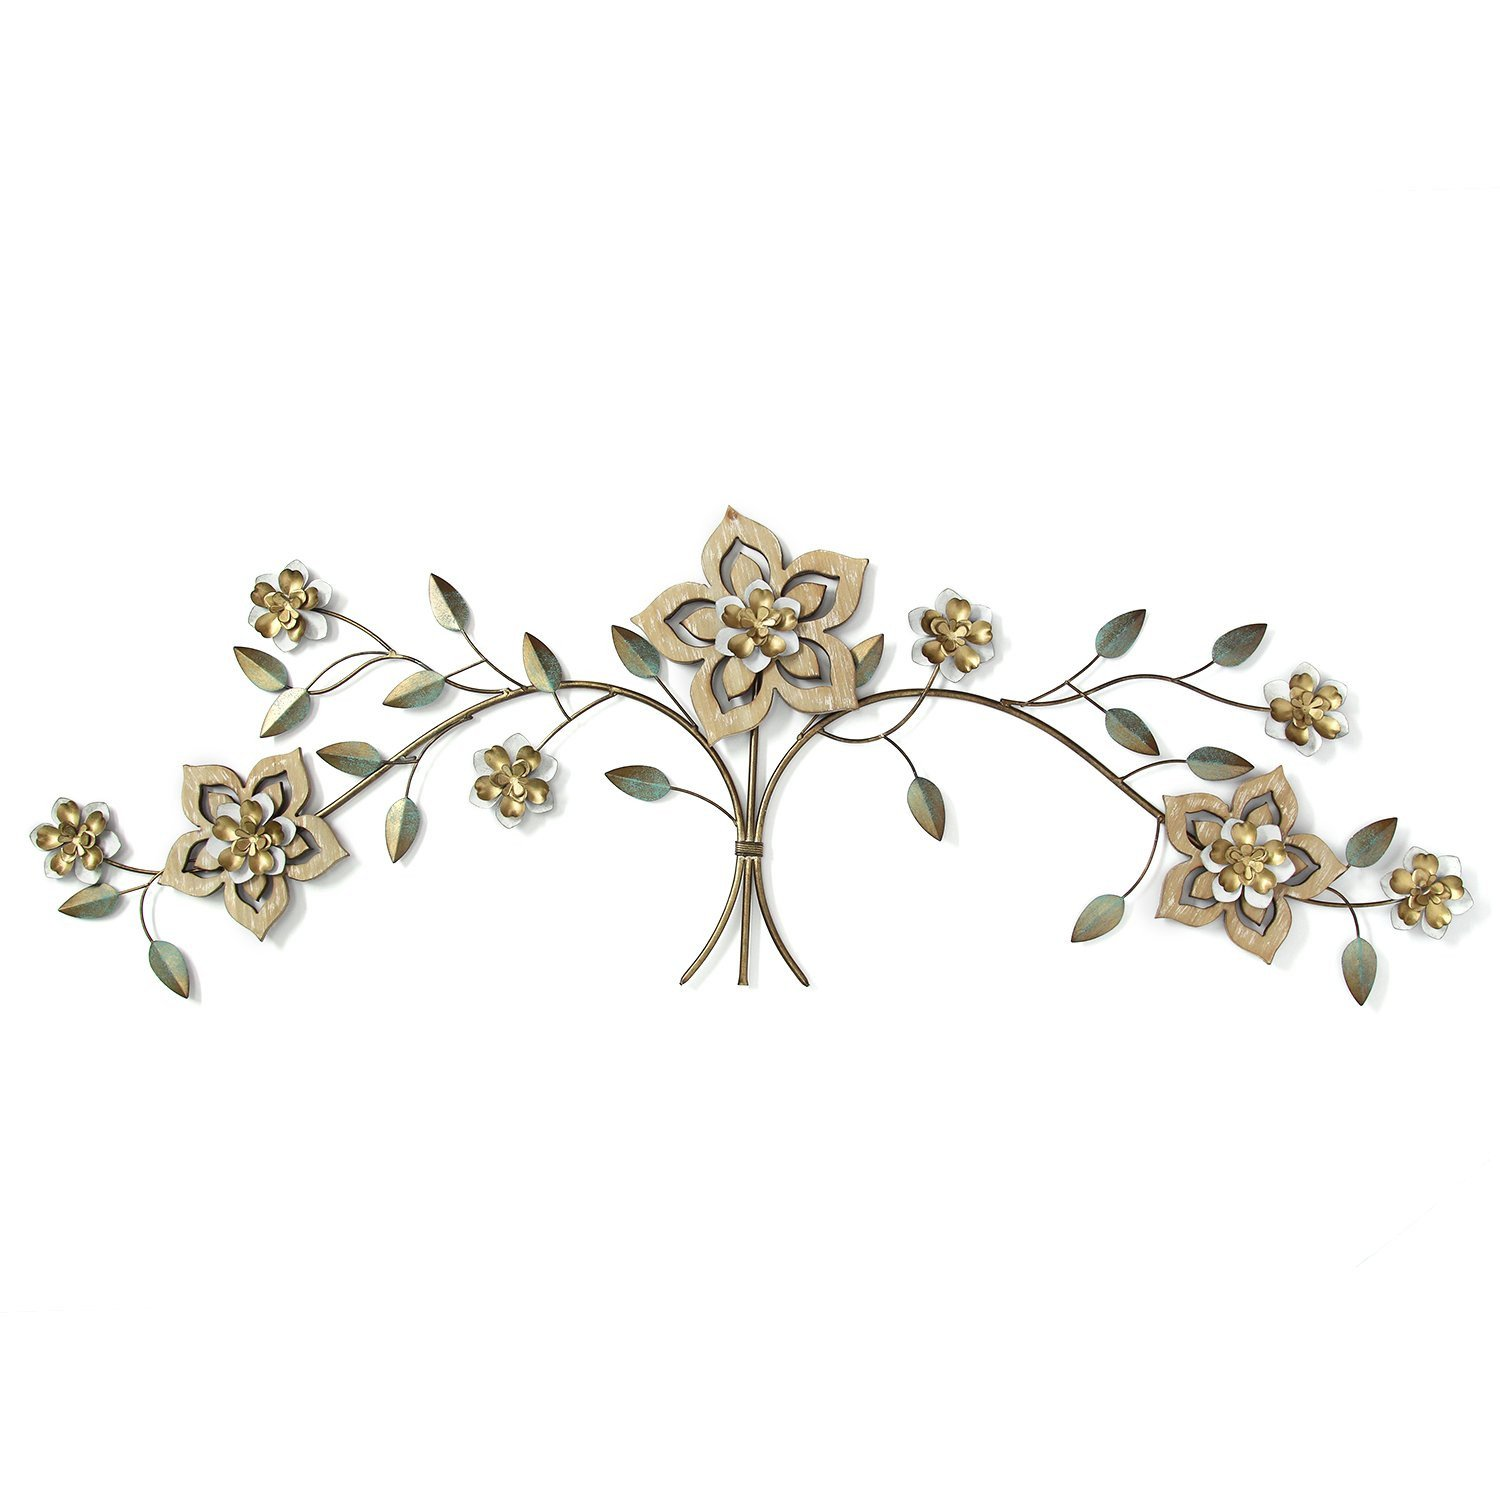 Over the Door Wall Decor Elegant Stratton Home Decor Wood Flower Over the Door Wall Decor